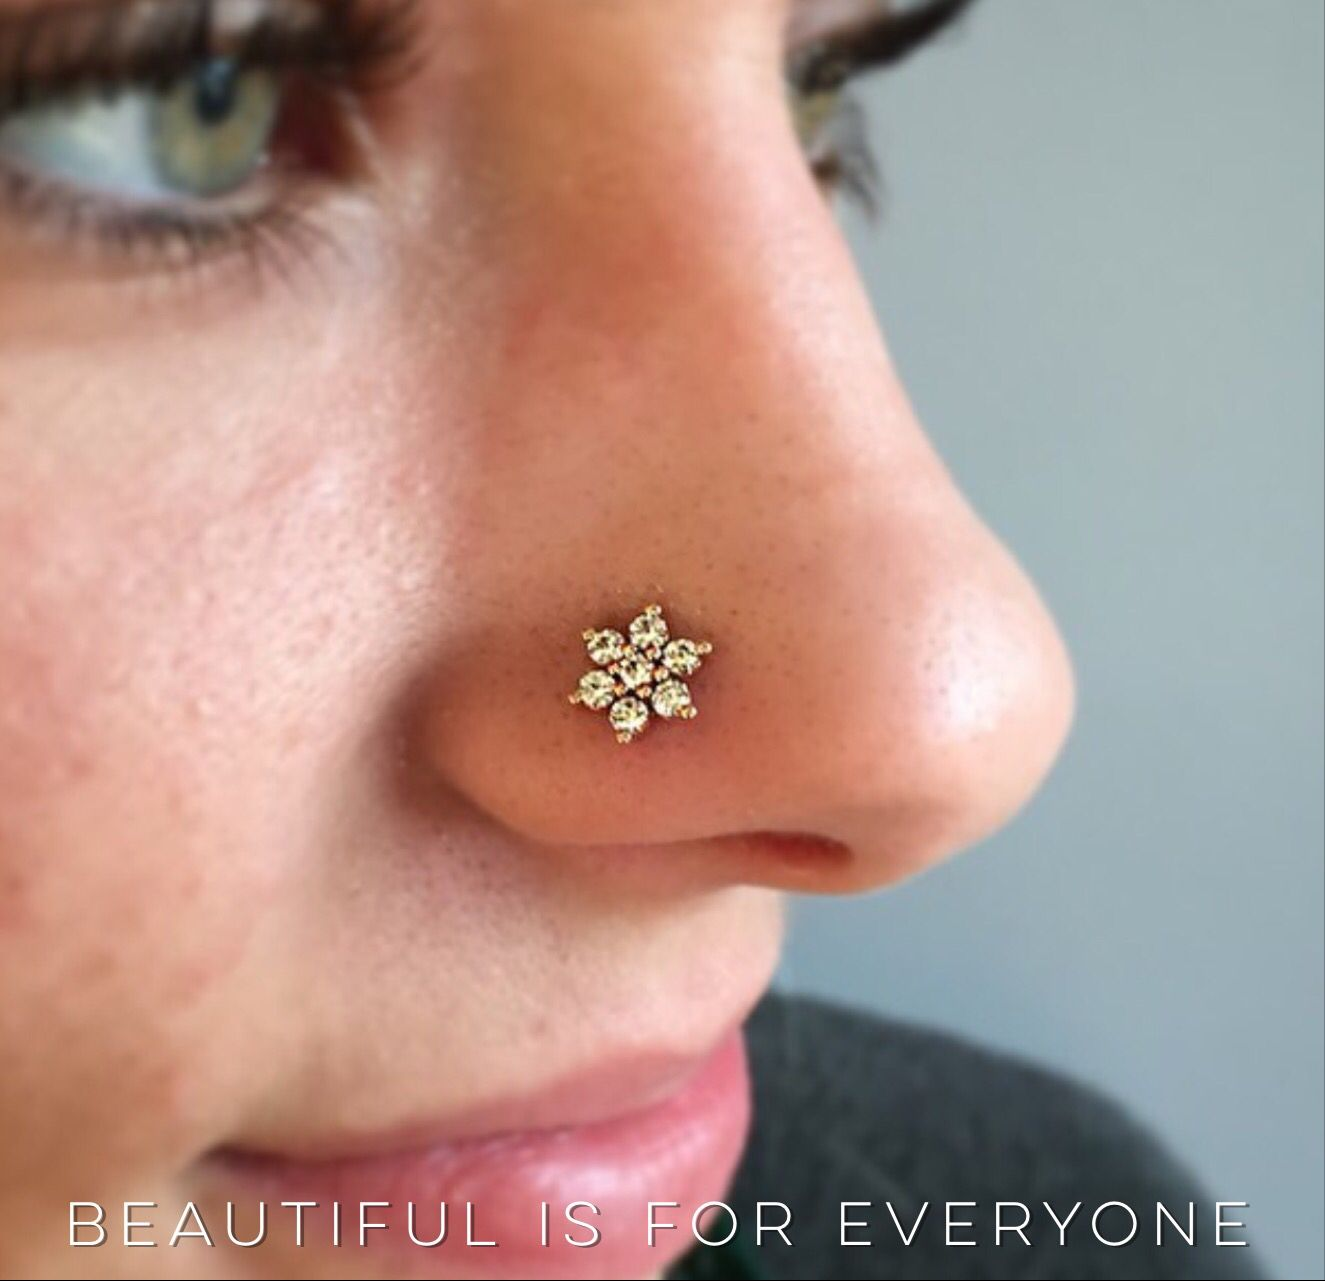 Upper nose piercing  We love this beautiful flower our client Piper picked out for her